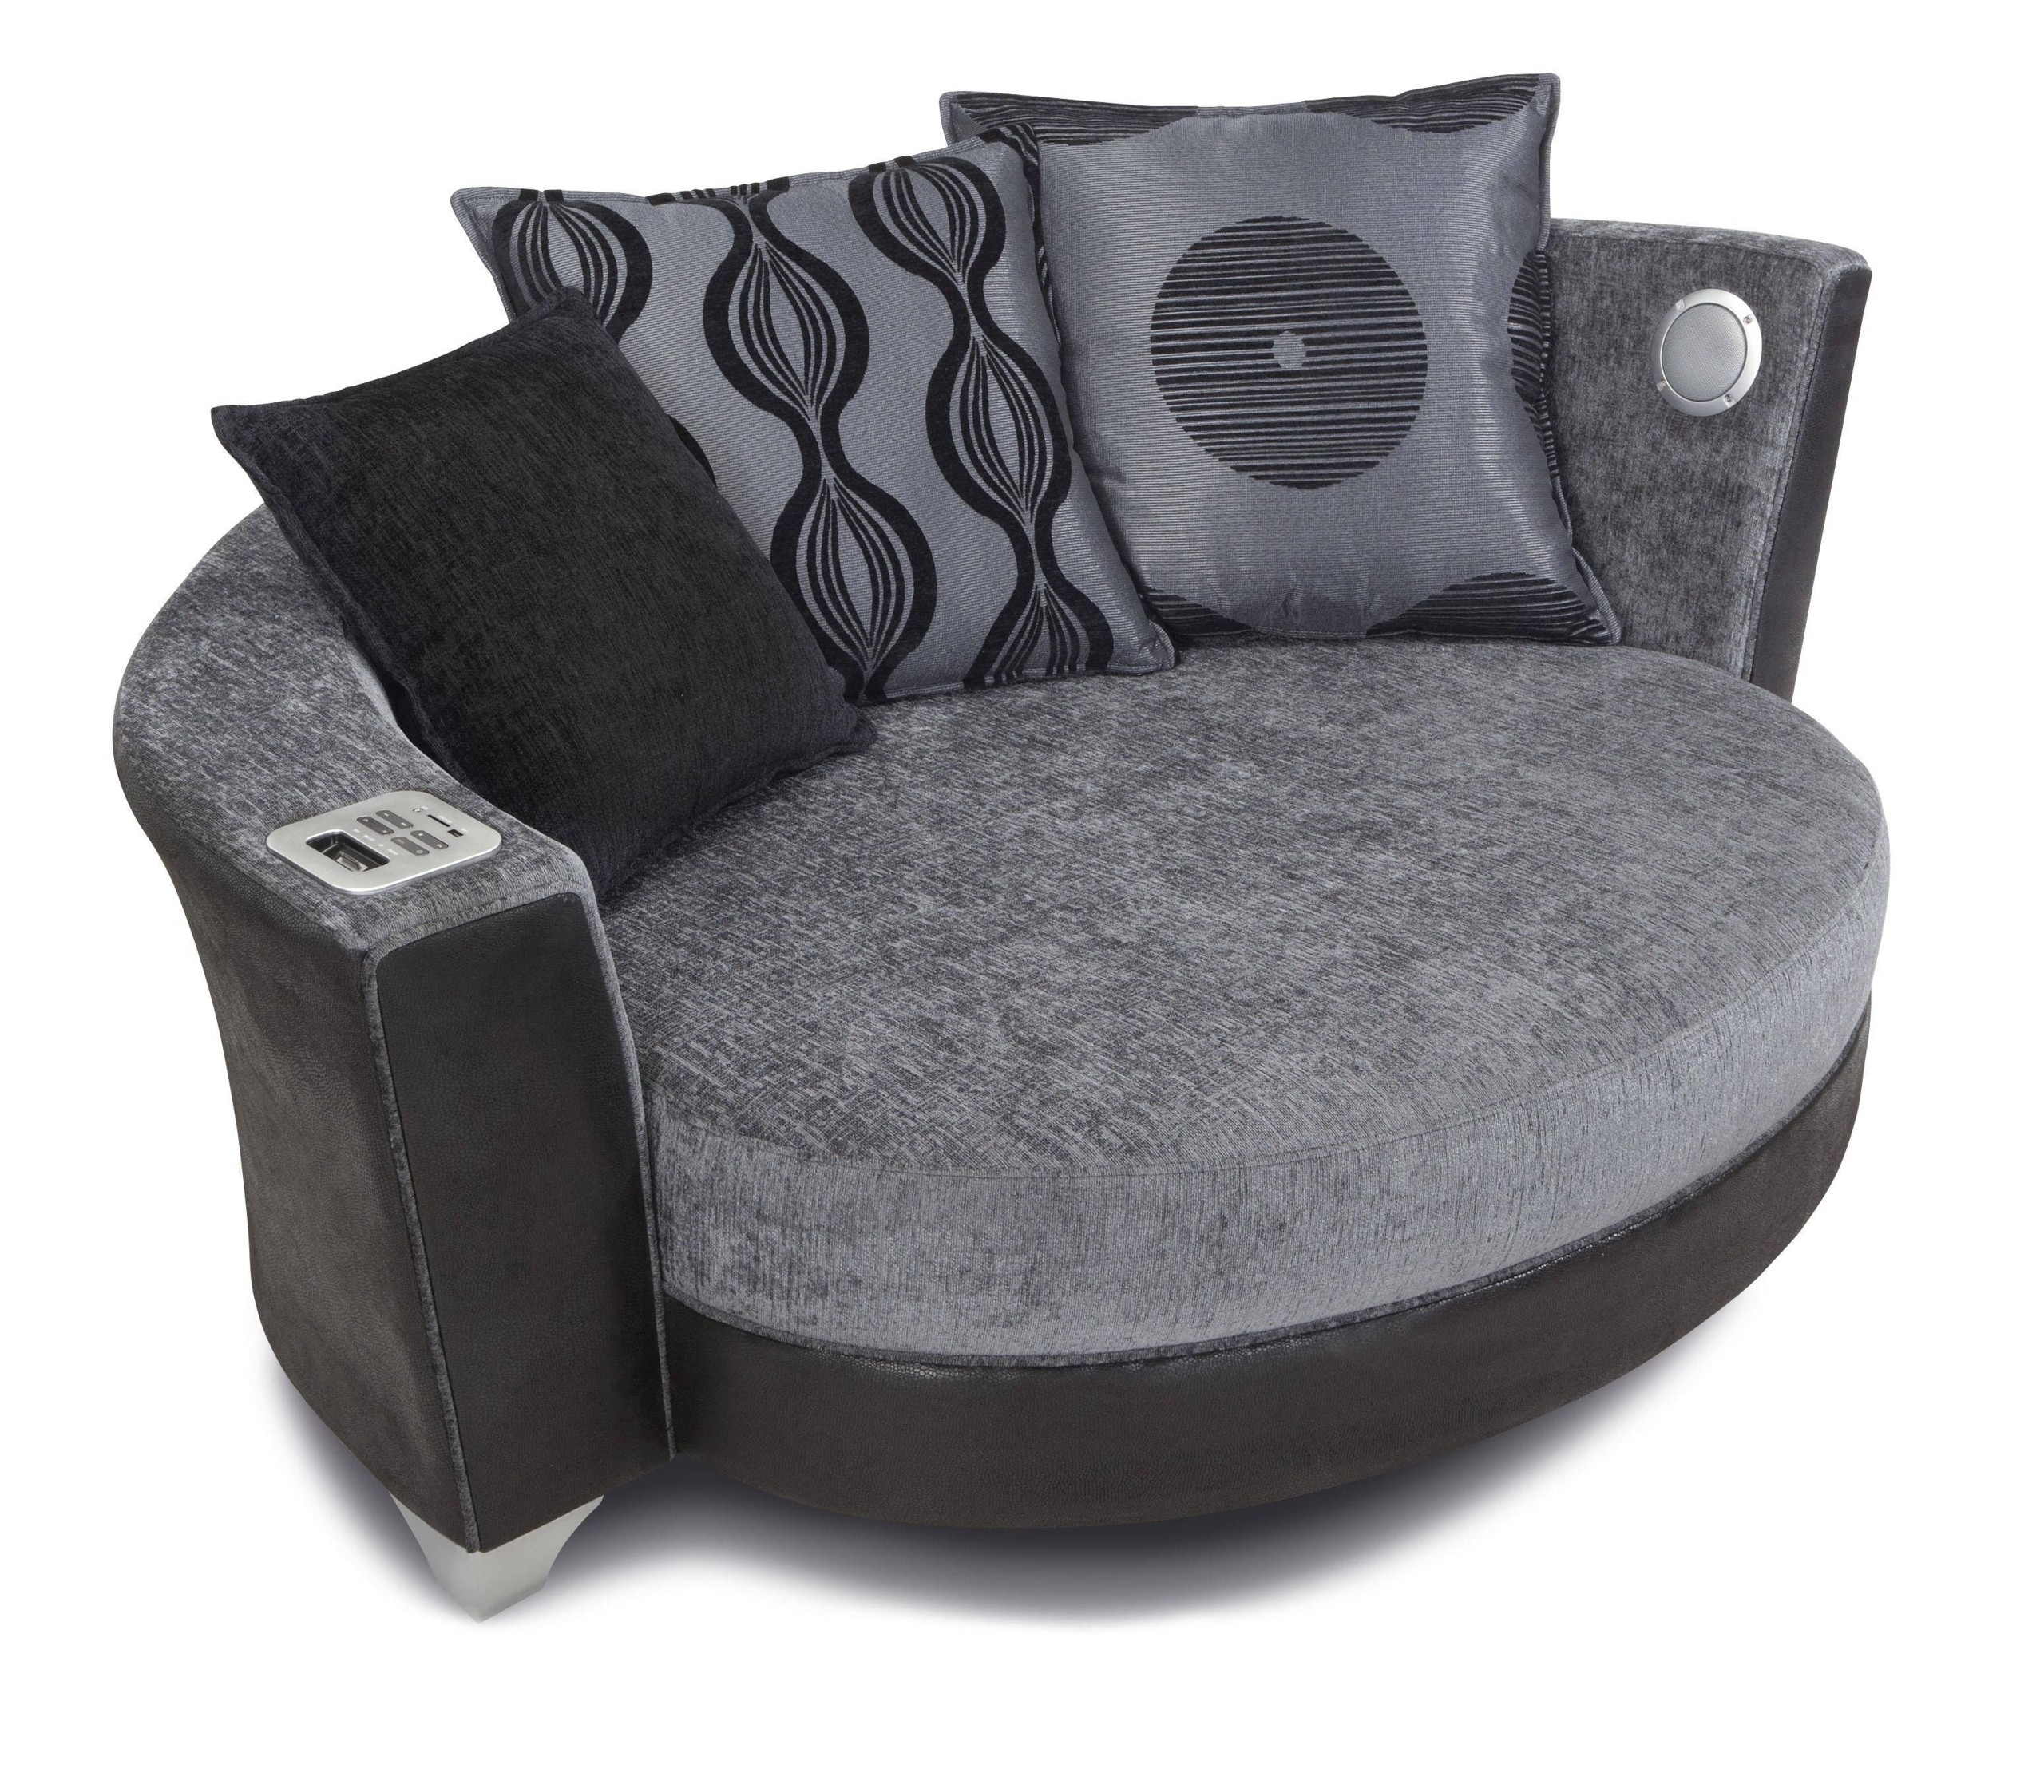 Superbe Chair With Speakers Built In   Ideas On Foter